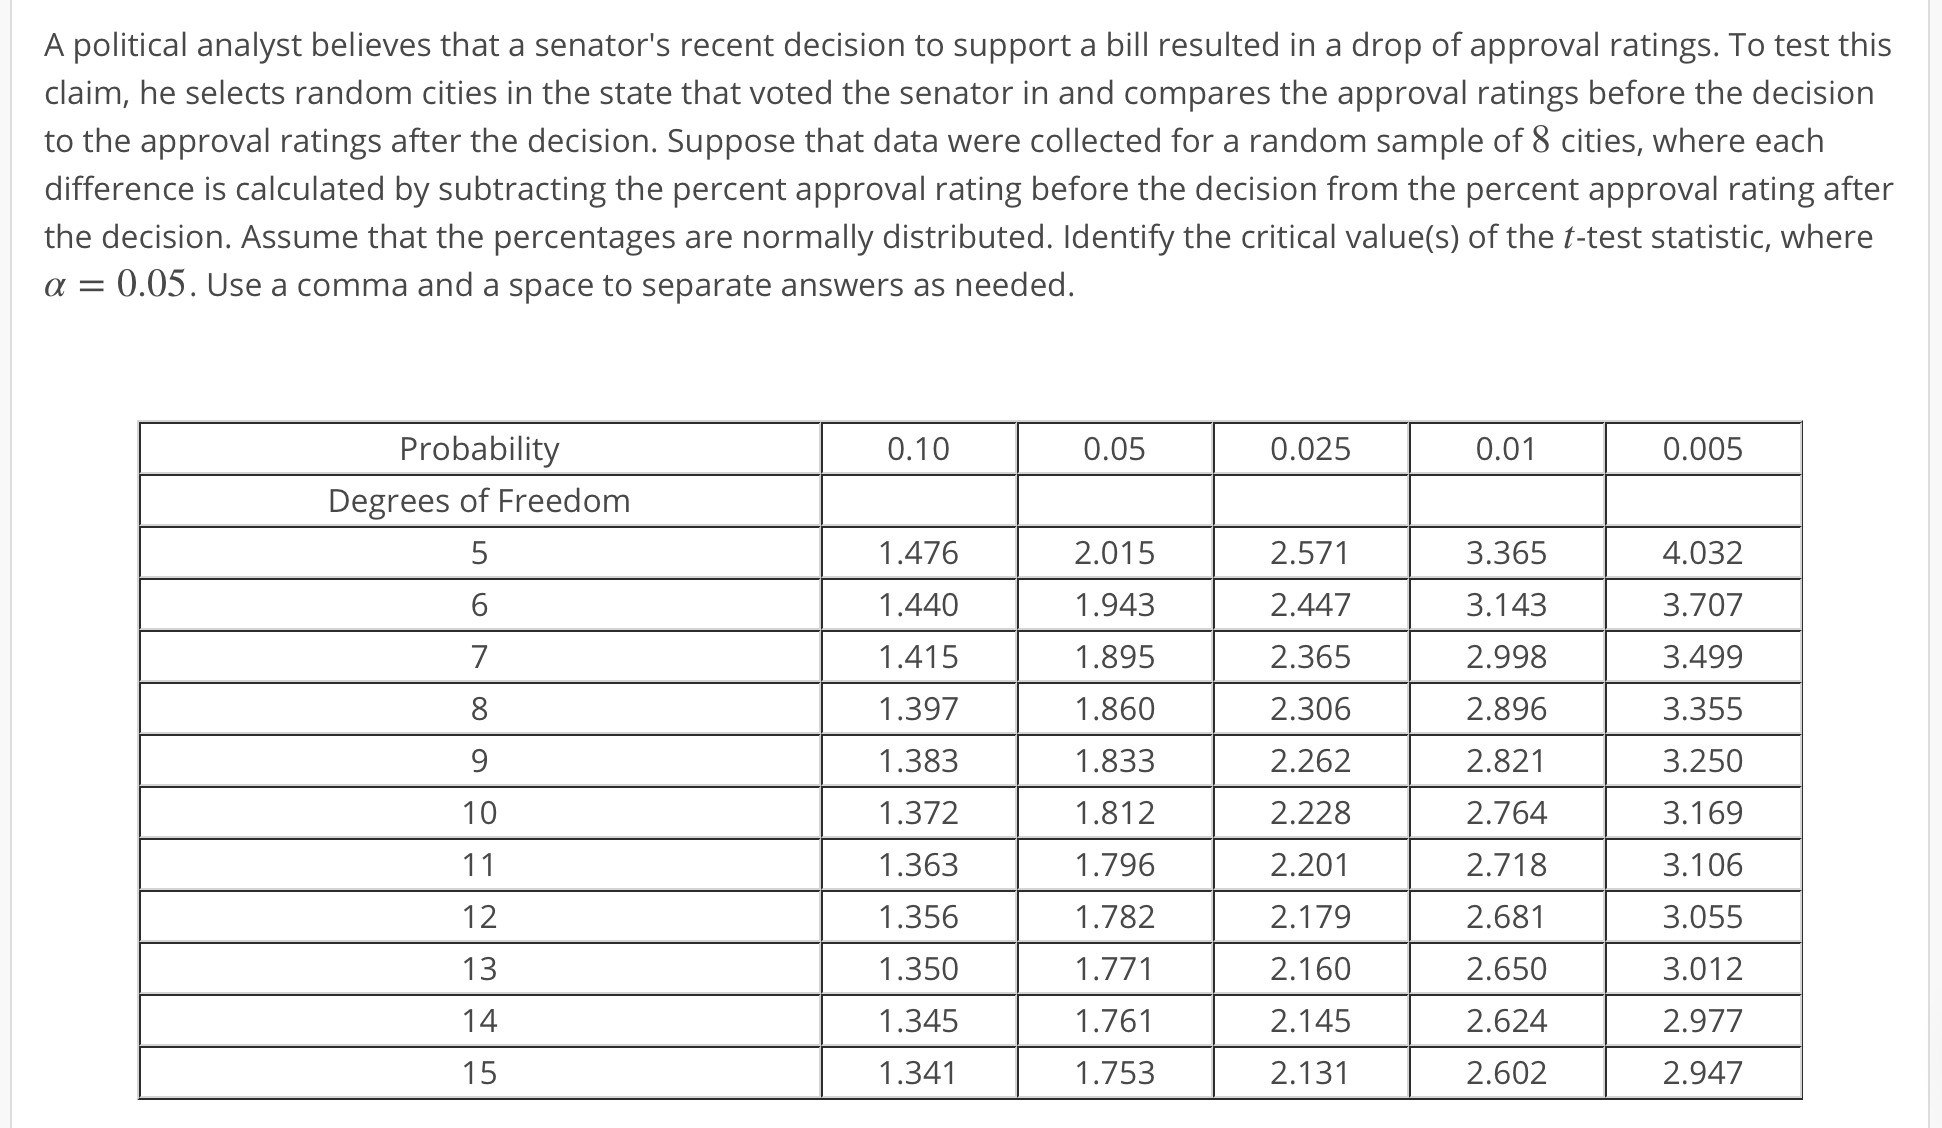 A political analyst believes that a senator's recent decision to support a bill resulted in a drop of approval ratings. To test this claim, he selects random cities in the state that voted the senator in and compares the approval ratings before the decisiorn to the approval ratings after the decision. Suppose that data were collected for a random sample of 8 cities, where each difference is calculated by subtracting the percent approval rating before the decision from the percent approval rating after the decision. Assume that the percentages are normally distributed. Identify the critical value(s) of the t-test statistic, where α-0.05. Use a comma and a space to separate answers as needed 0.01 Probability Degrees of Freedom 5 6 0.10 0.05 0.025 0.005 1.476 1.440 1.415 1.397 1.383 1.372 1.363 1.356 1.350 1.345 1.341 2.015 1.943 1.895 1.860 1.833 1.812 1.796 1.782 2.571 2.447 2.365 2.306 2.262 2.228 2.201 2.179 2.160 2.145 2.131 3.365 3.143 2.998 2.896 2.821 2.764 2.718 2.681 2.650 2.624 2.602 4.032 3.707 3.499 3.355 3.250 3.169 3.106 3.055 3.012 2.977 2.947 1.761 1.753